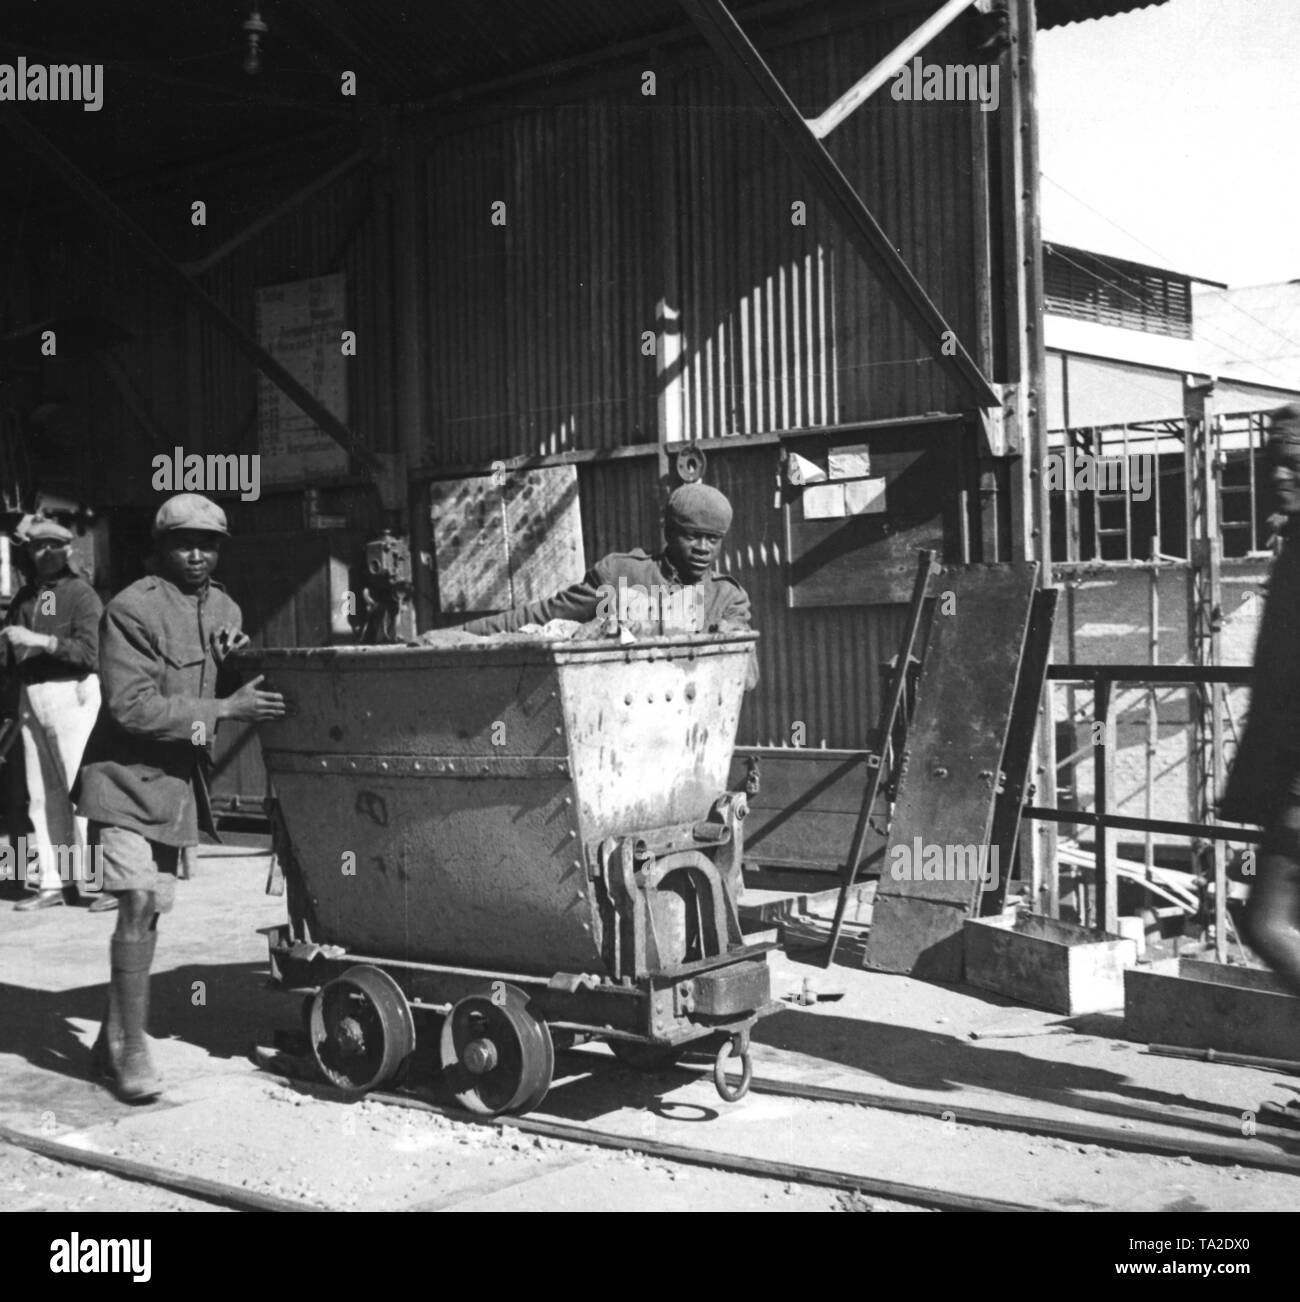 Two workers in the Tsumeb mine push an ore wagon out of the hoist frame (undated shot). - Stock Image